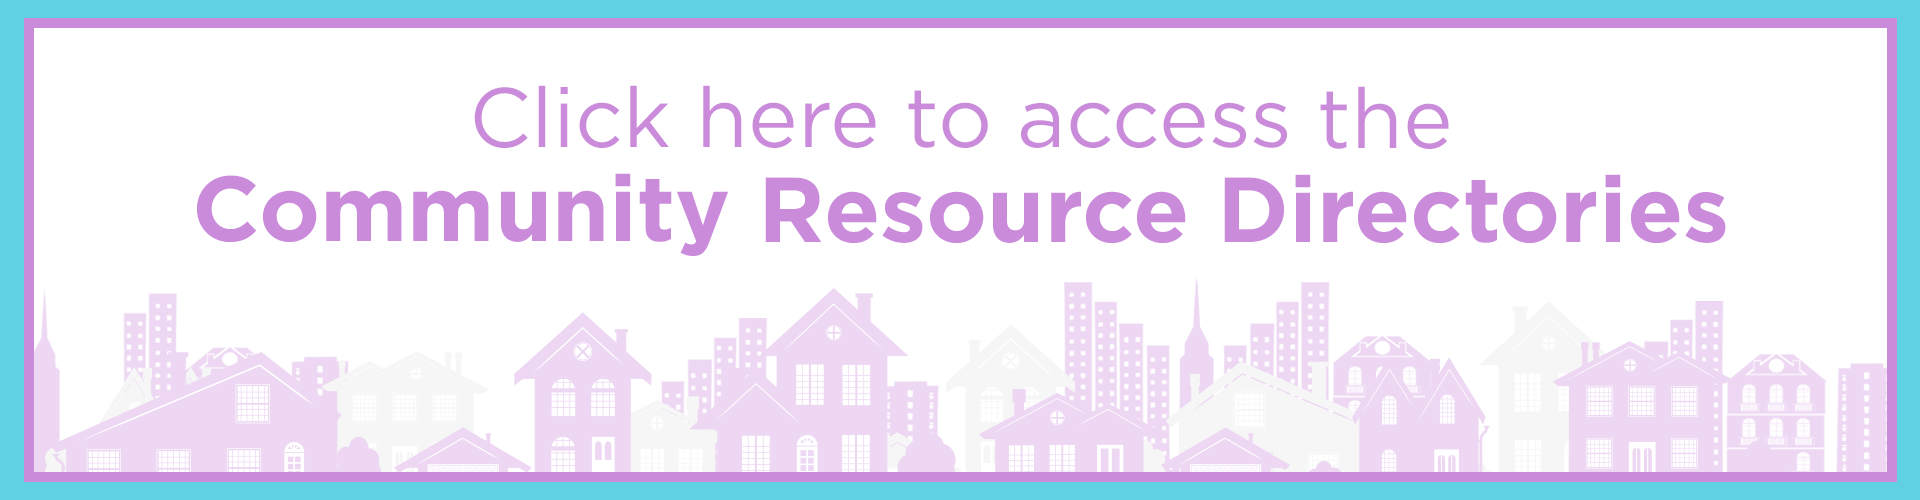 Click here to access the Community Resource Directories